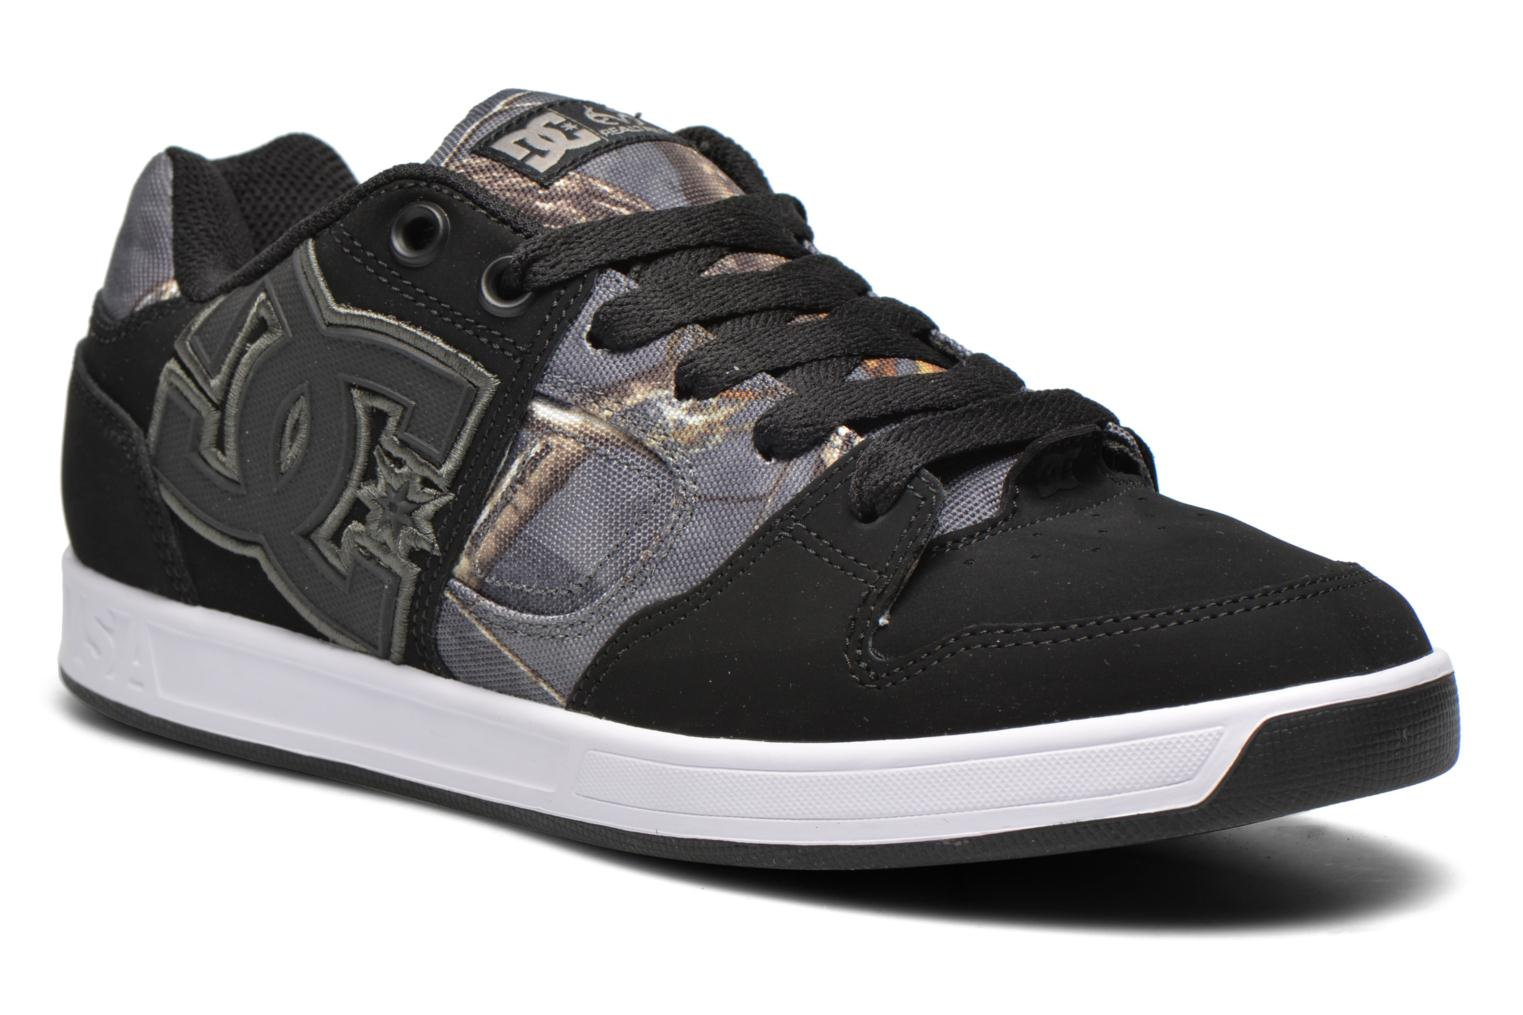 Sneakers Sceptor Realtree by DC Shoes